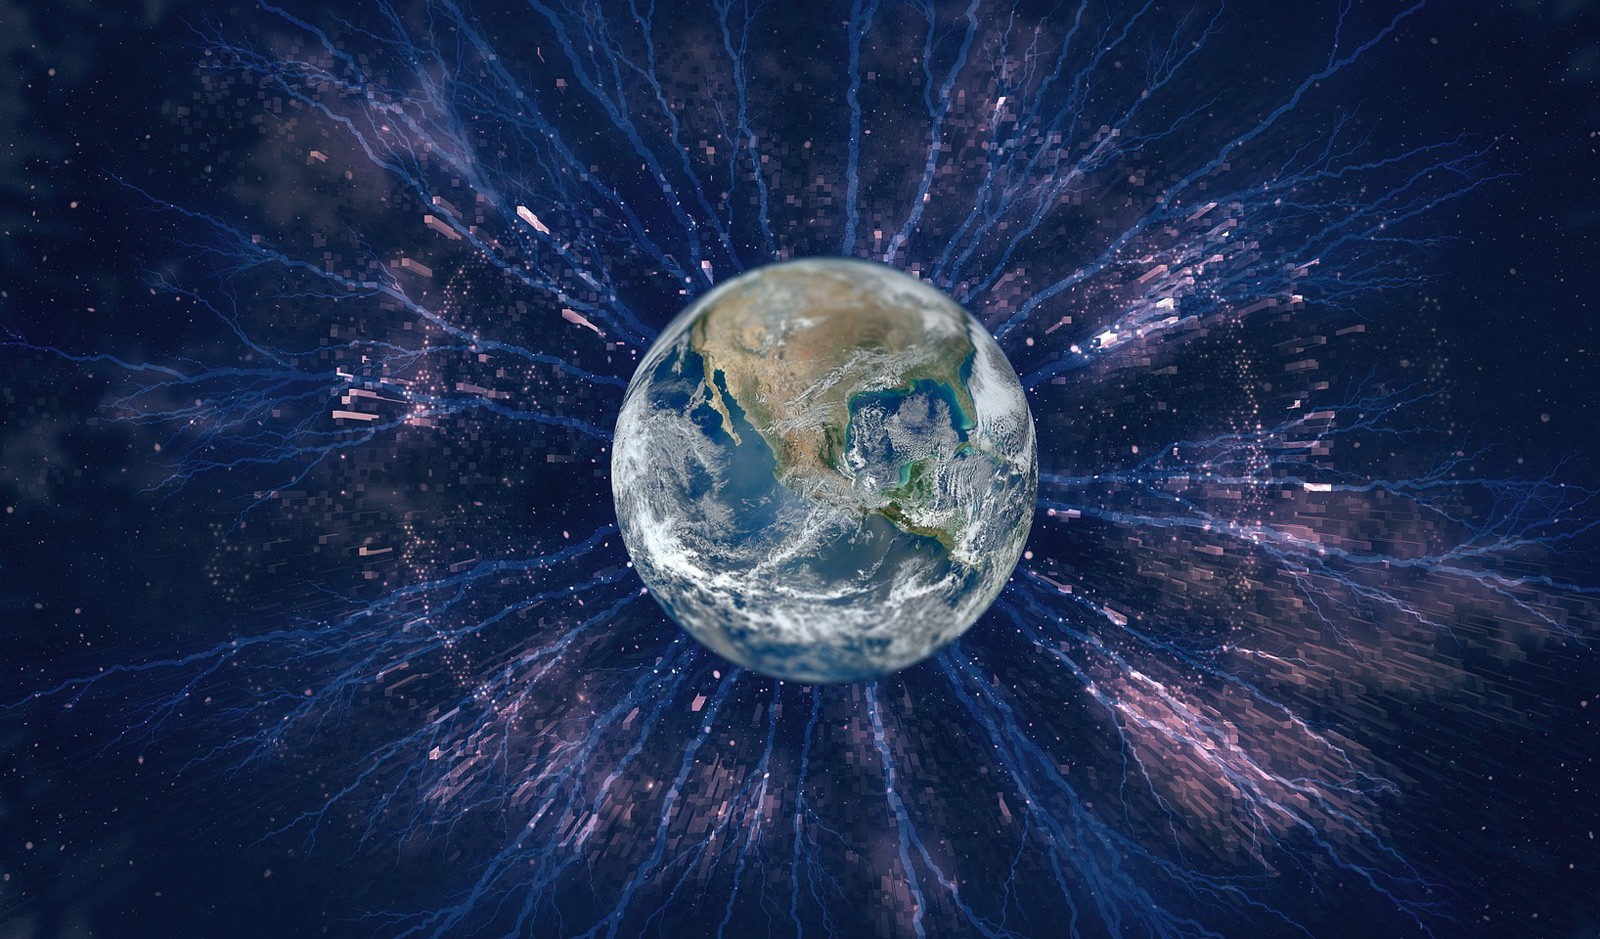 Earth as a Symbol of Stability and a Grounding Meditation